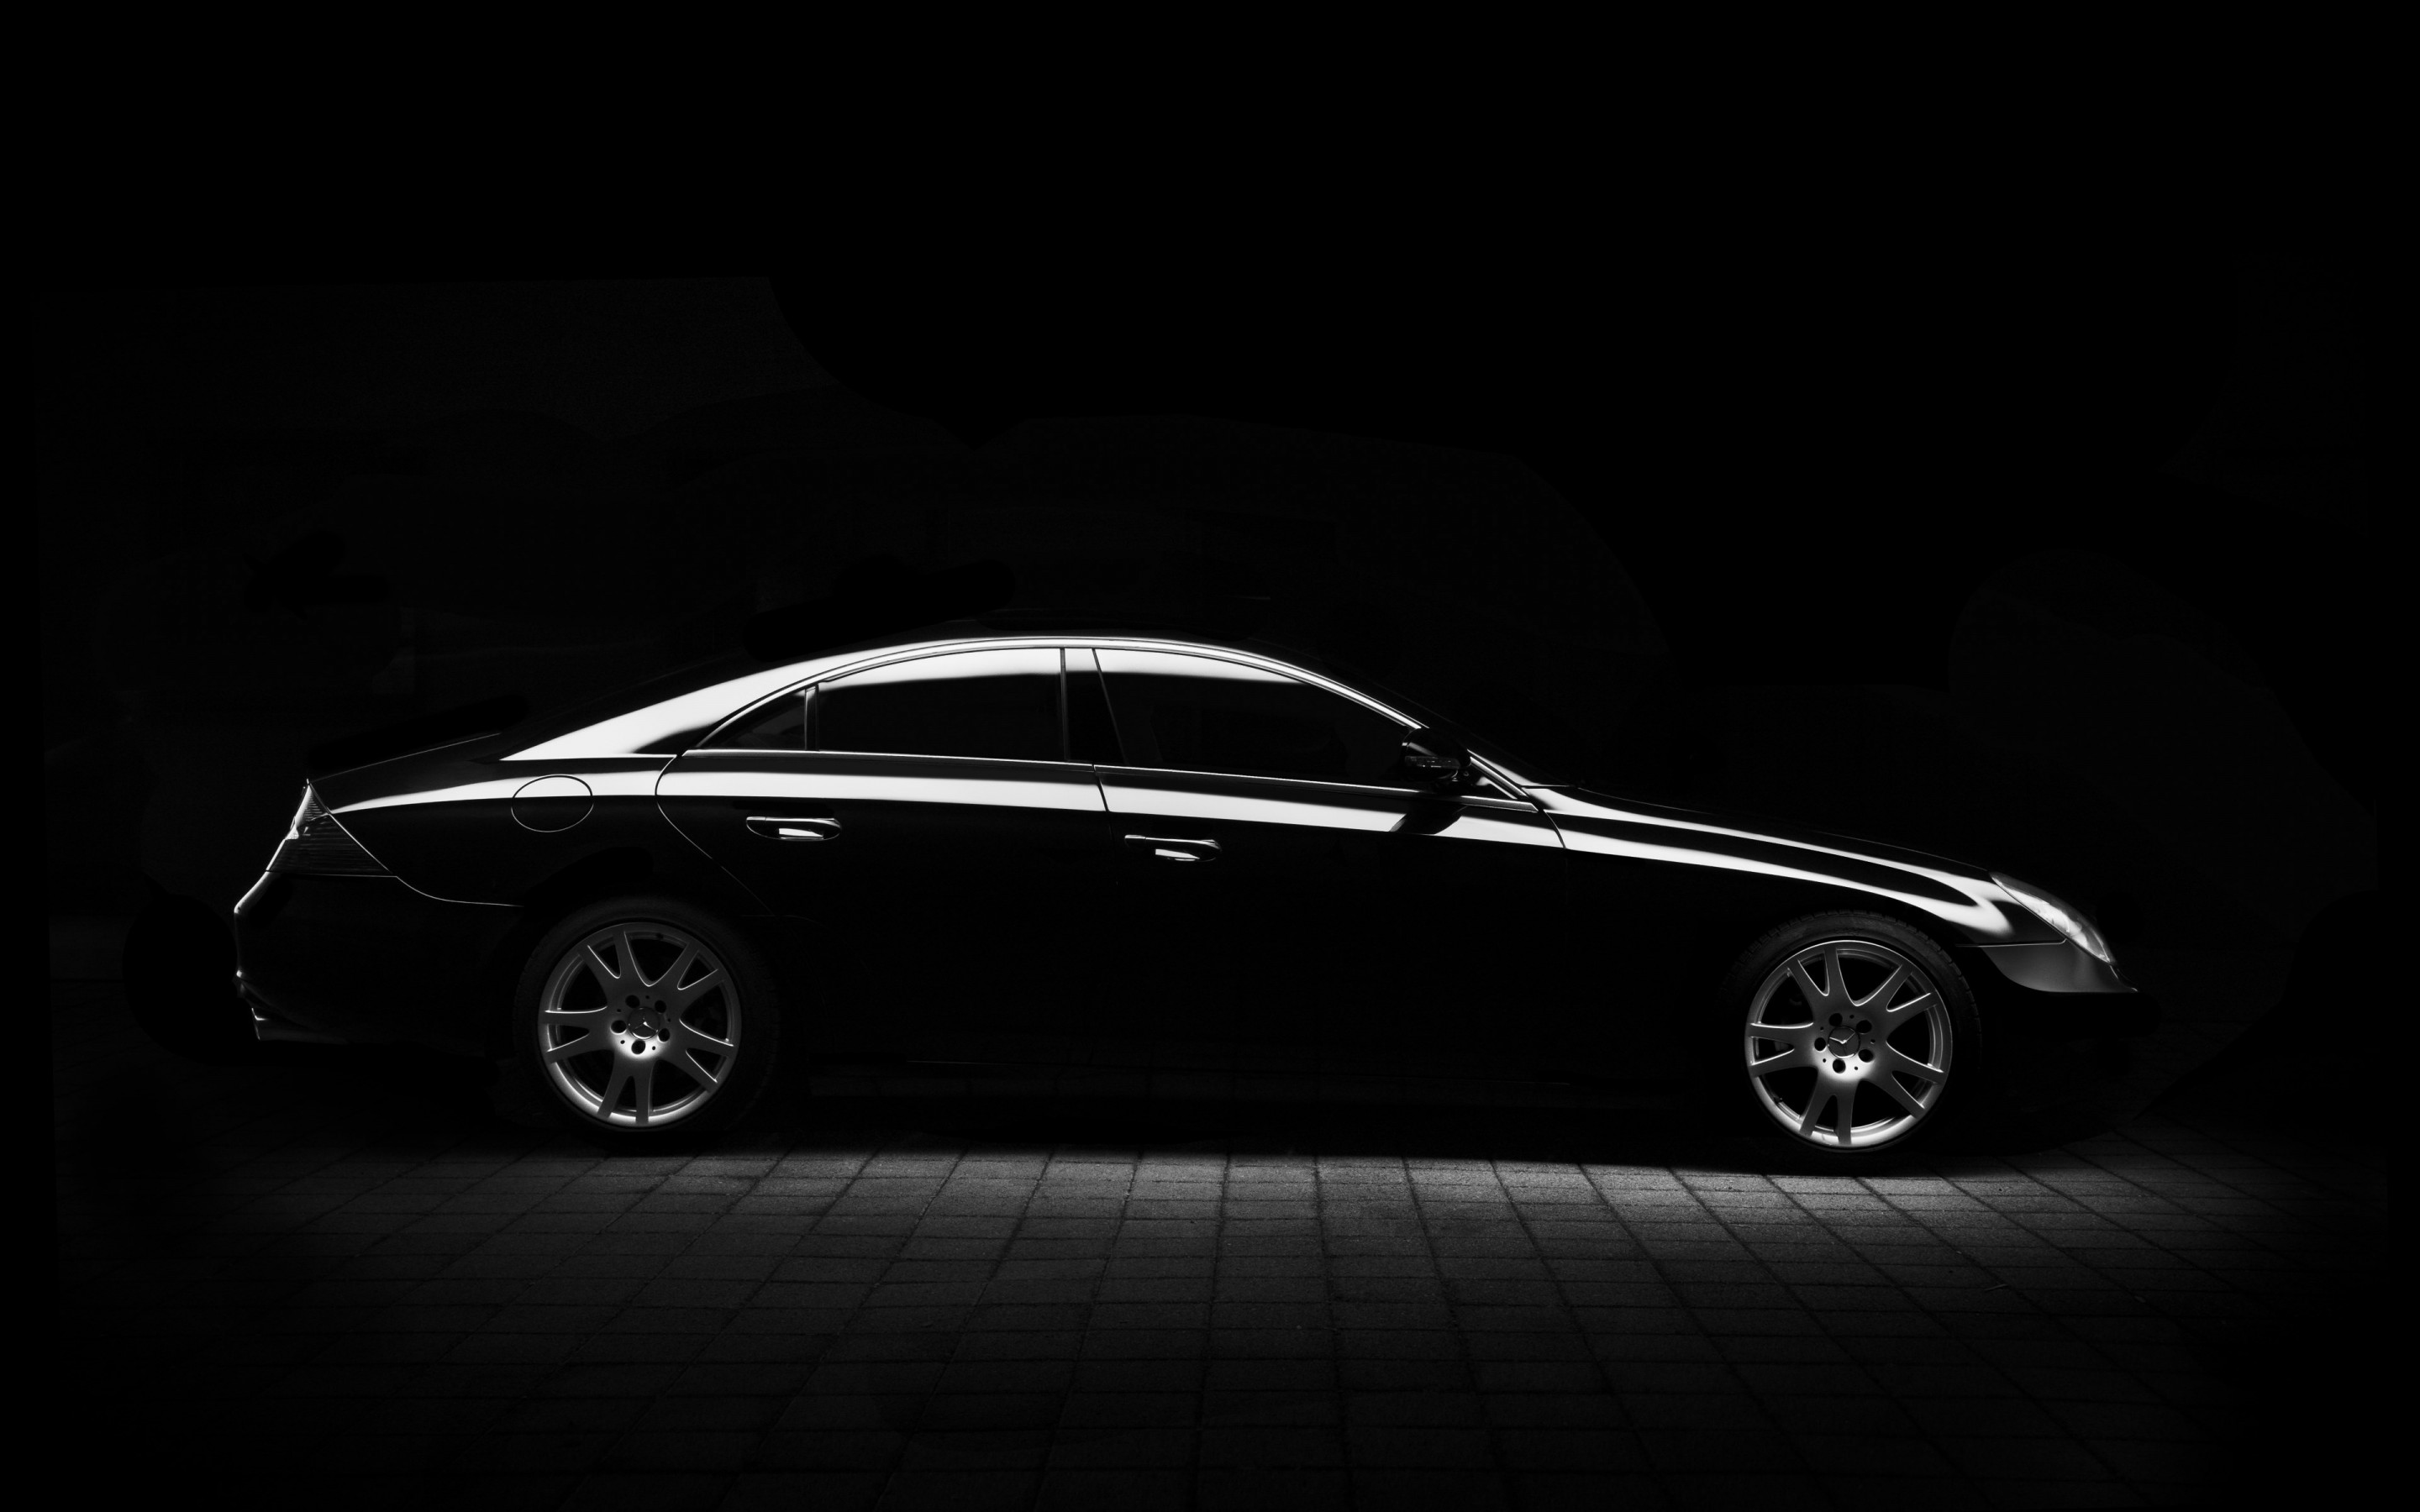 Silhouette of a Mercedes car | 2880x1800 wallpaper